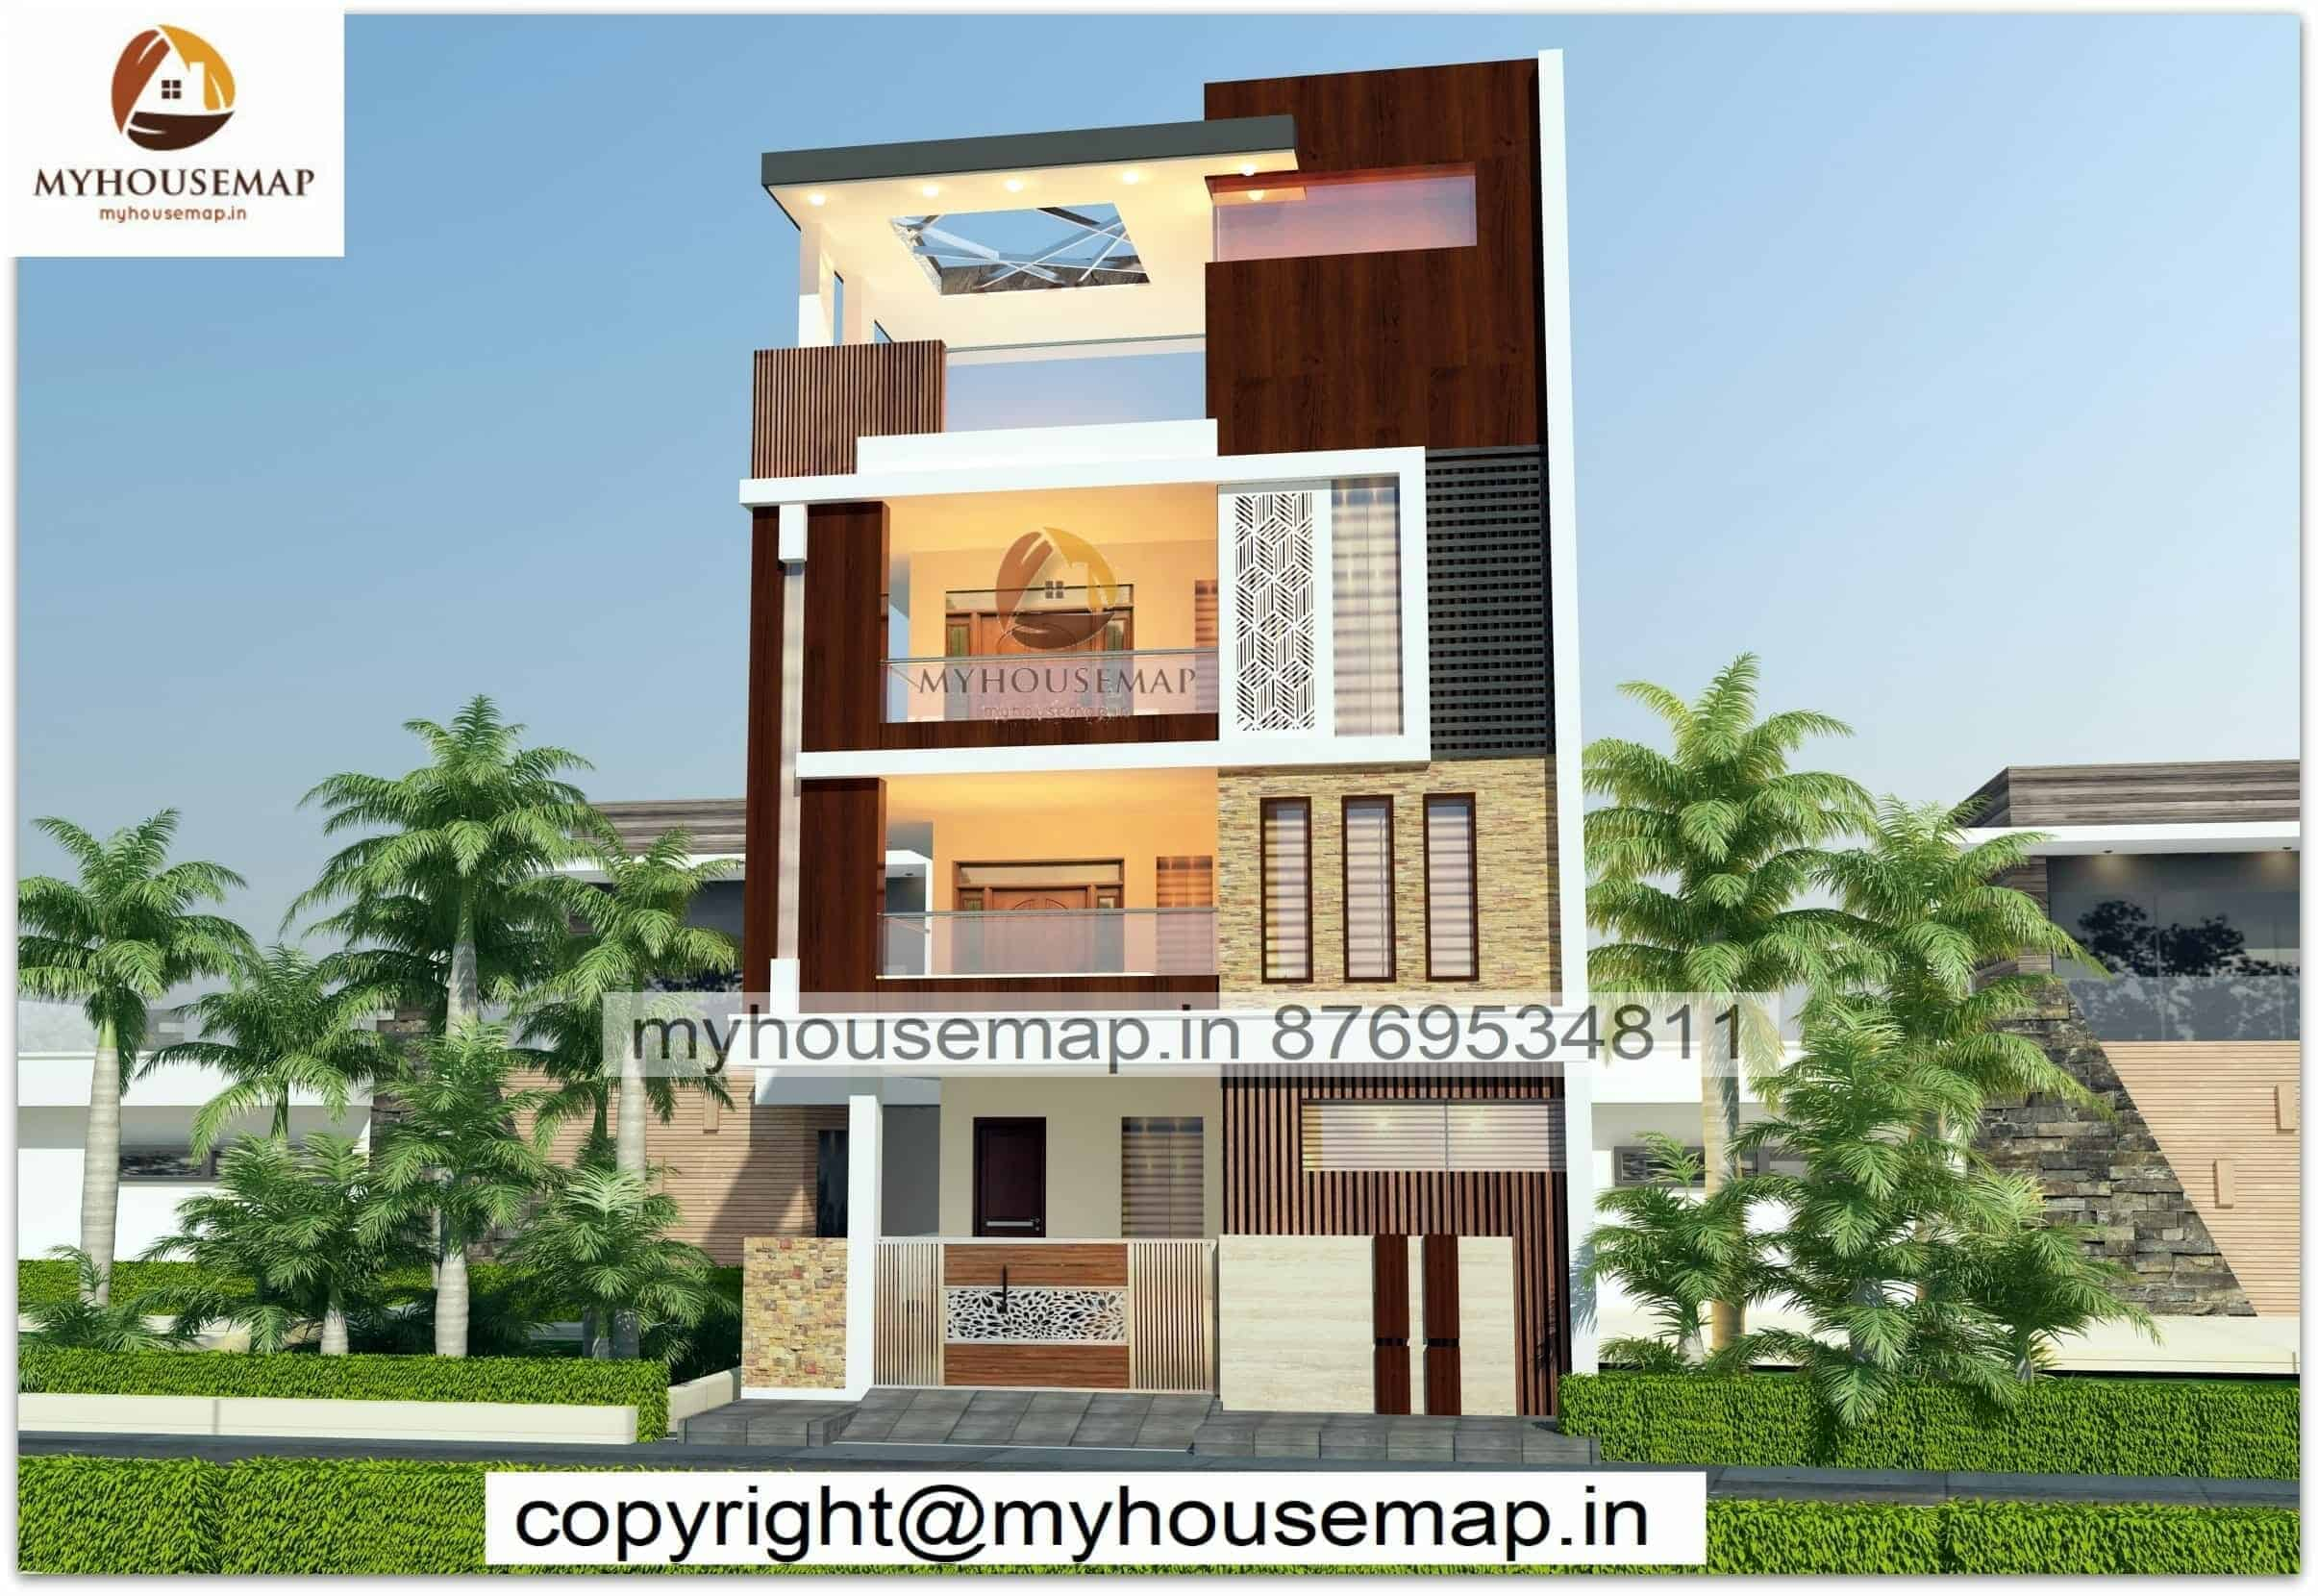 Indian Village Simple Home Design Archives My House Map Simple home design in village. indian village simple home design